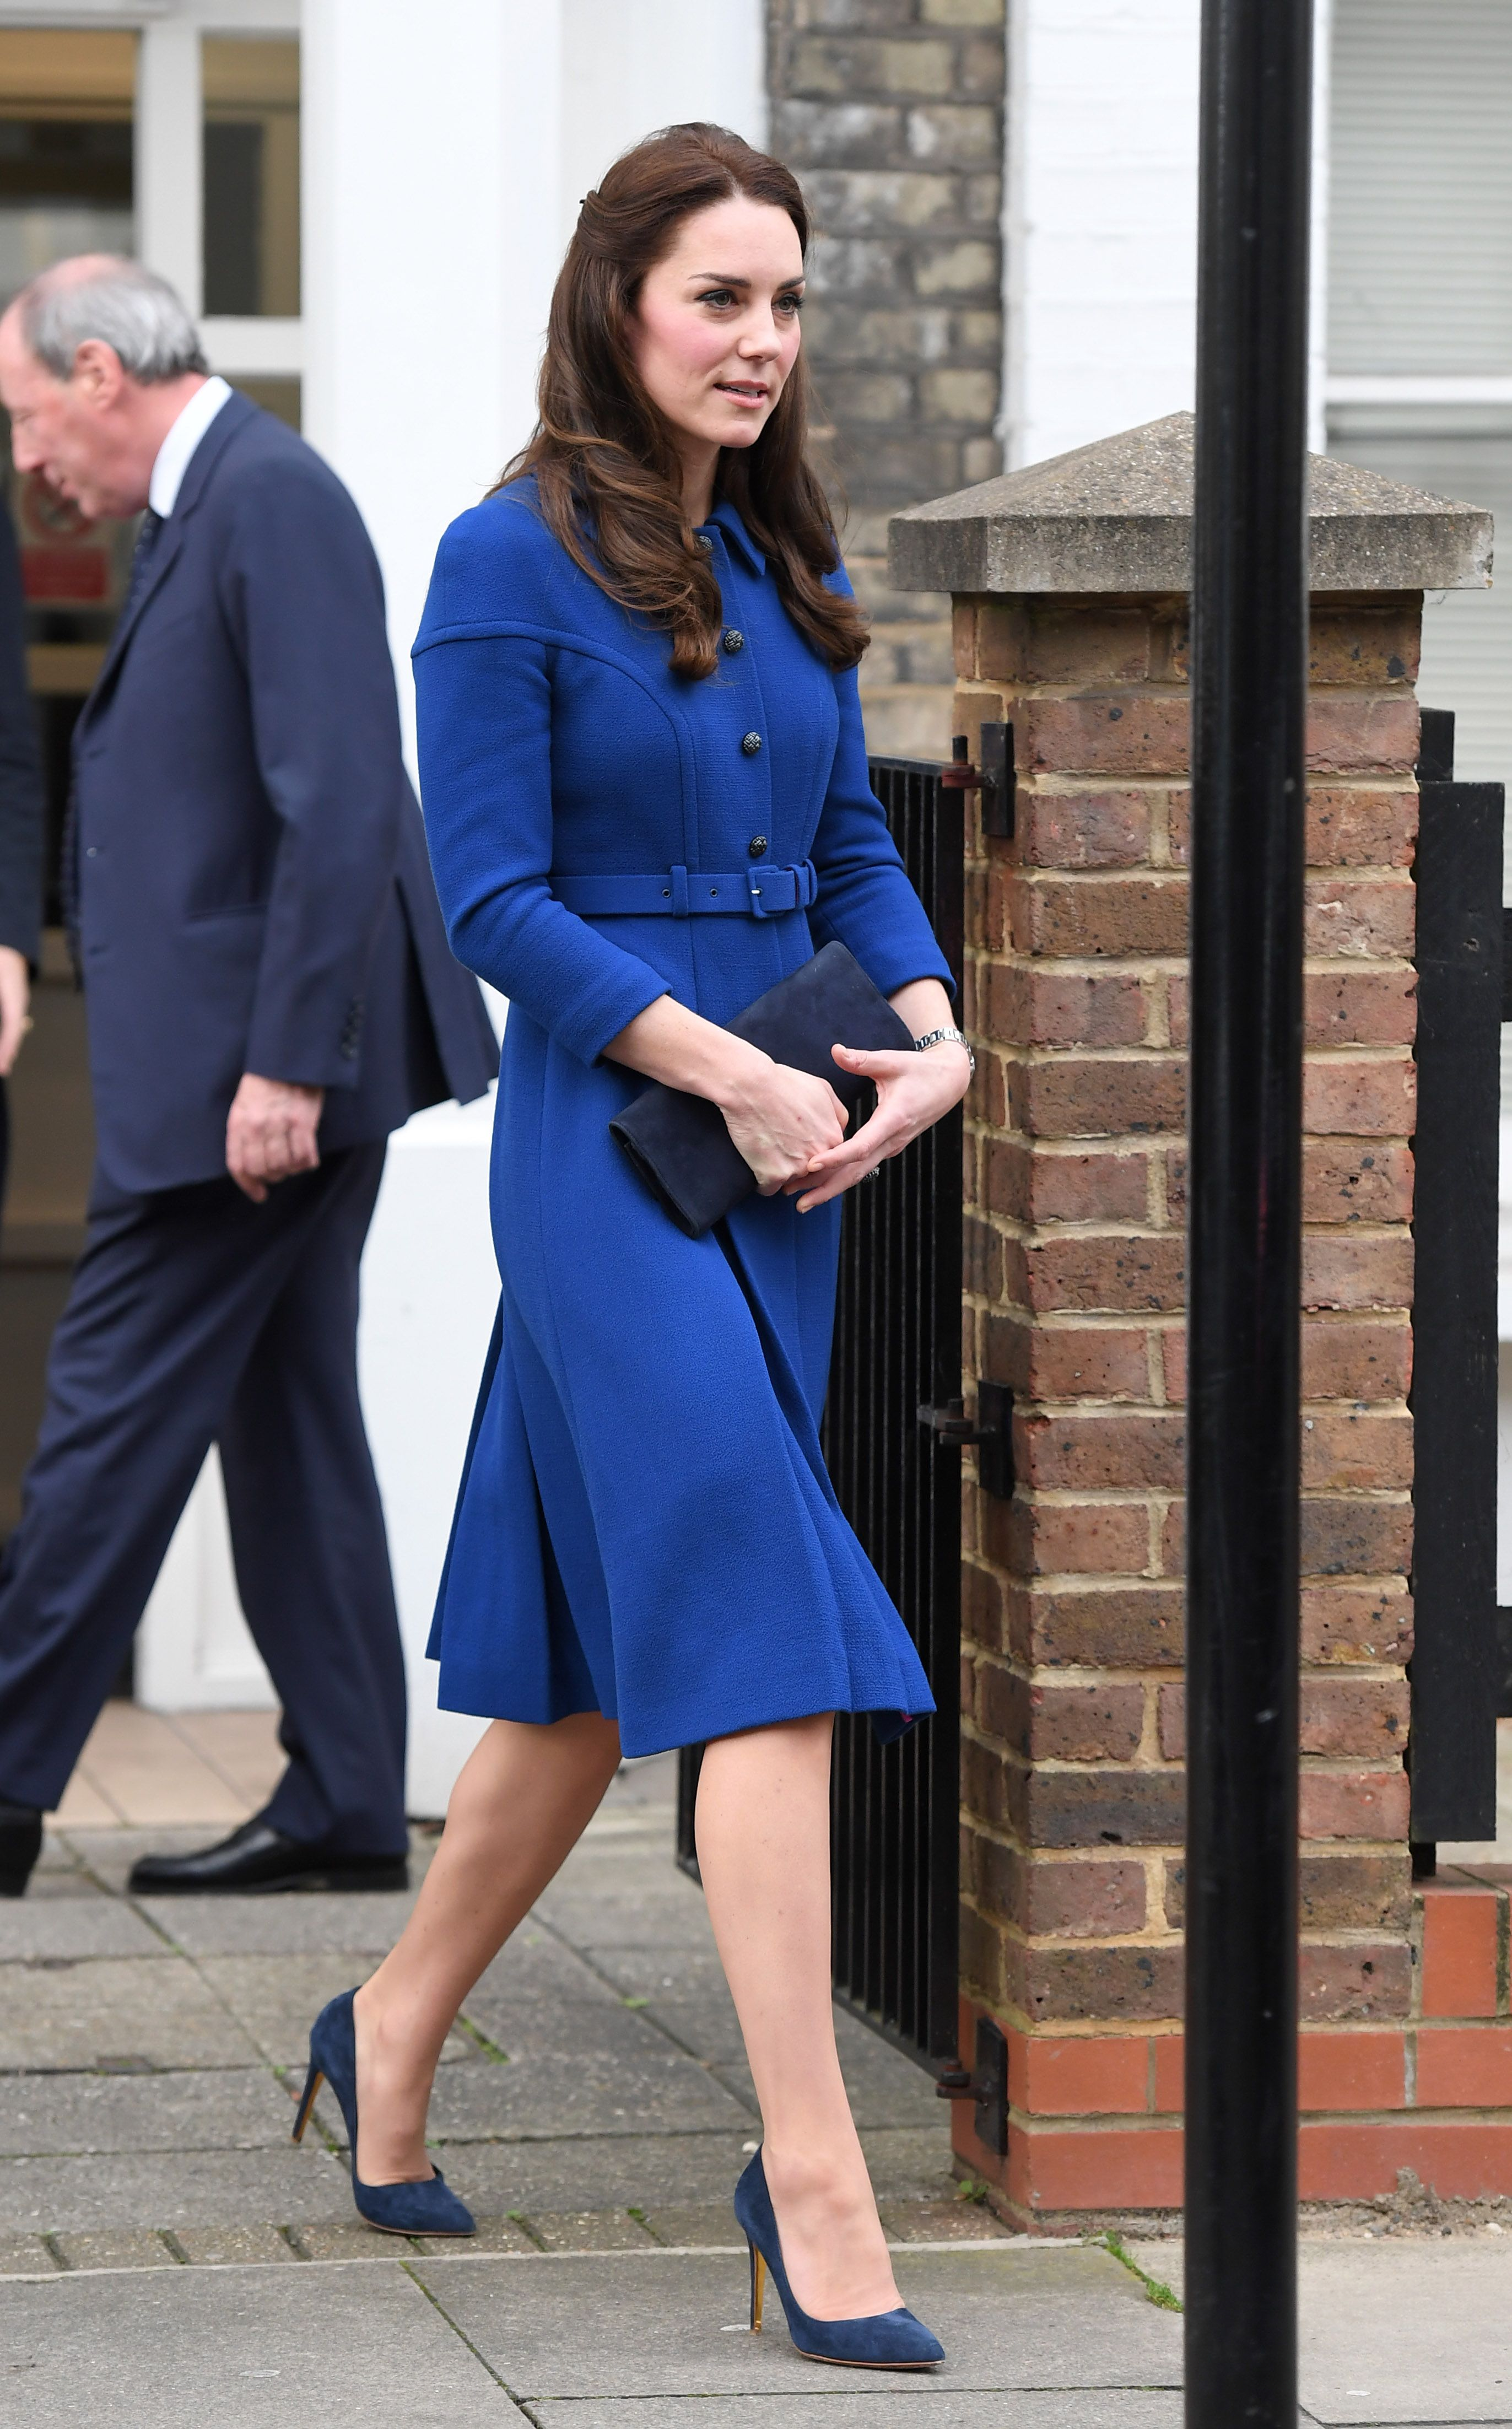 Kate Middleton's style: The Duchess' best ever dresses and outfits